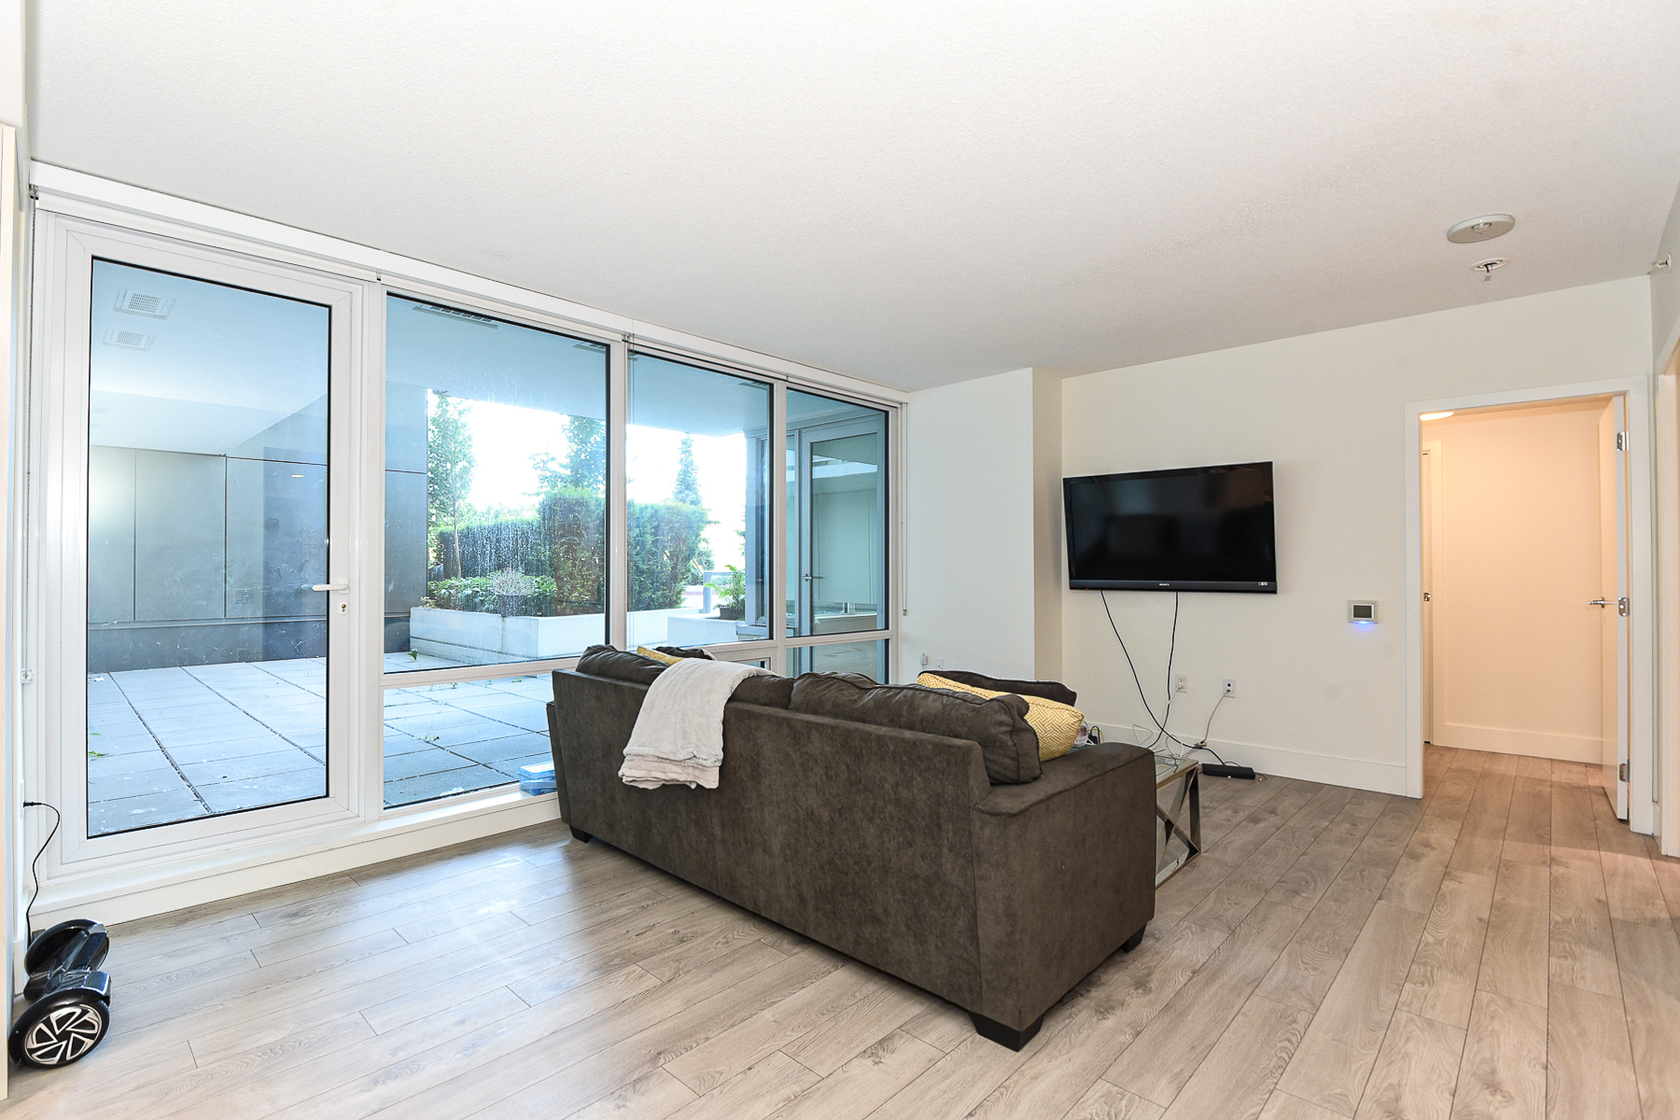 12-1-of-1 at 680 Seylynn Crescent, Lynnmour, North Vancouver